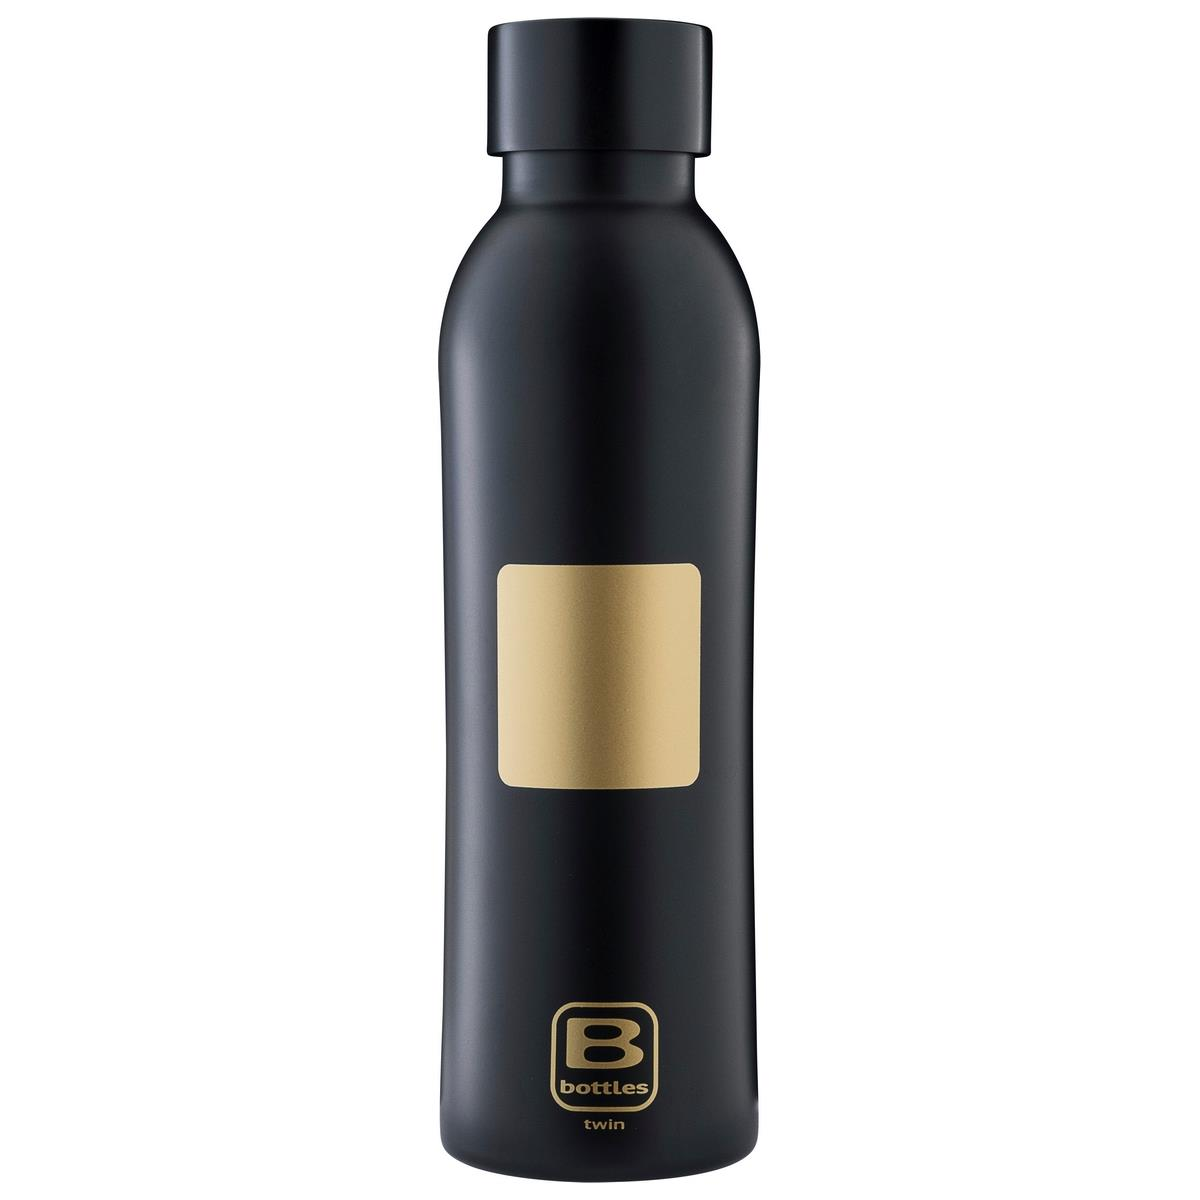 B Bottles Twin - Yellow Gold Brushed - 350 ml - Bottiglia Termica doppia parete in acc. inox 18/10